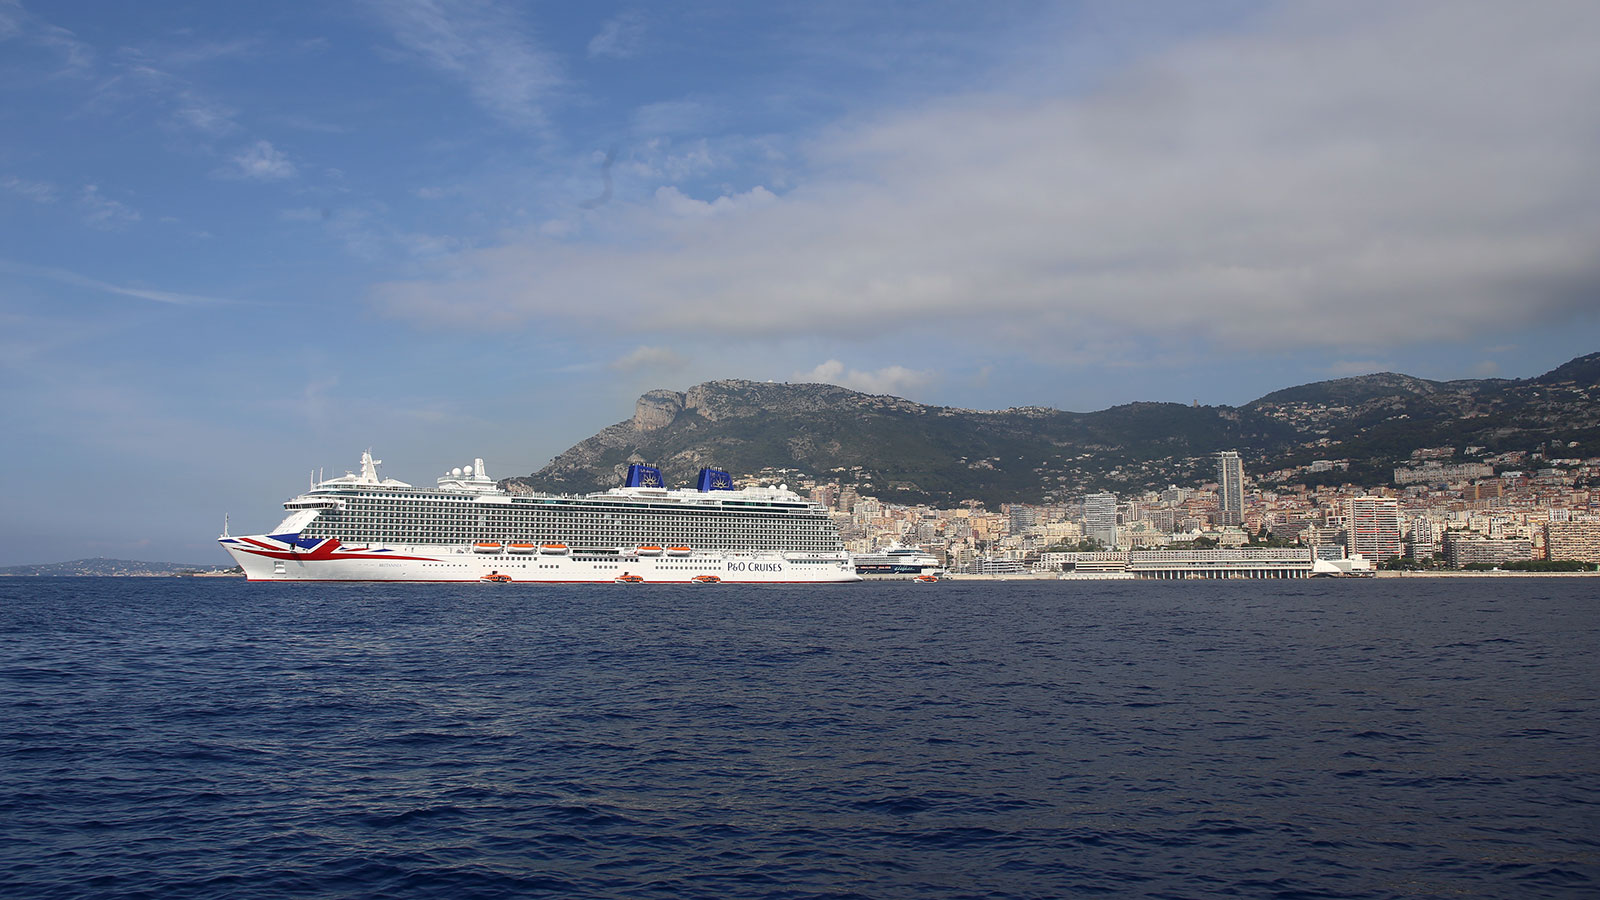 Croisieres-Paquebot-Voilier-@-DTC-IMG_4085